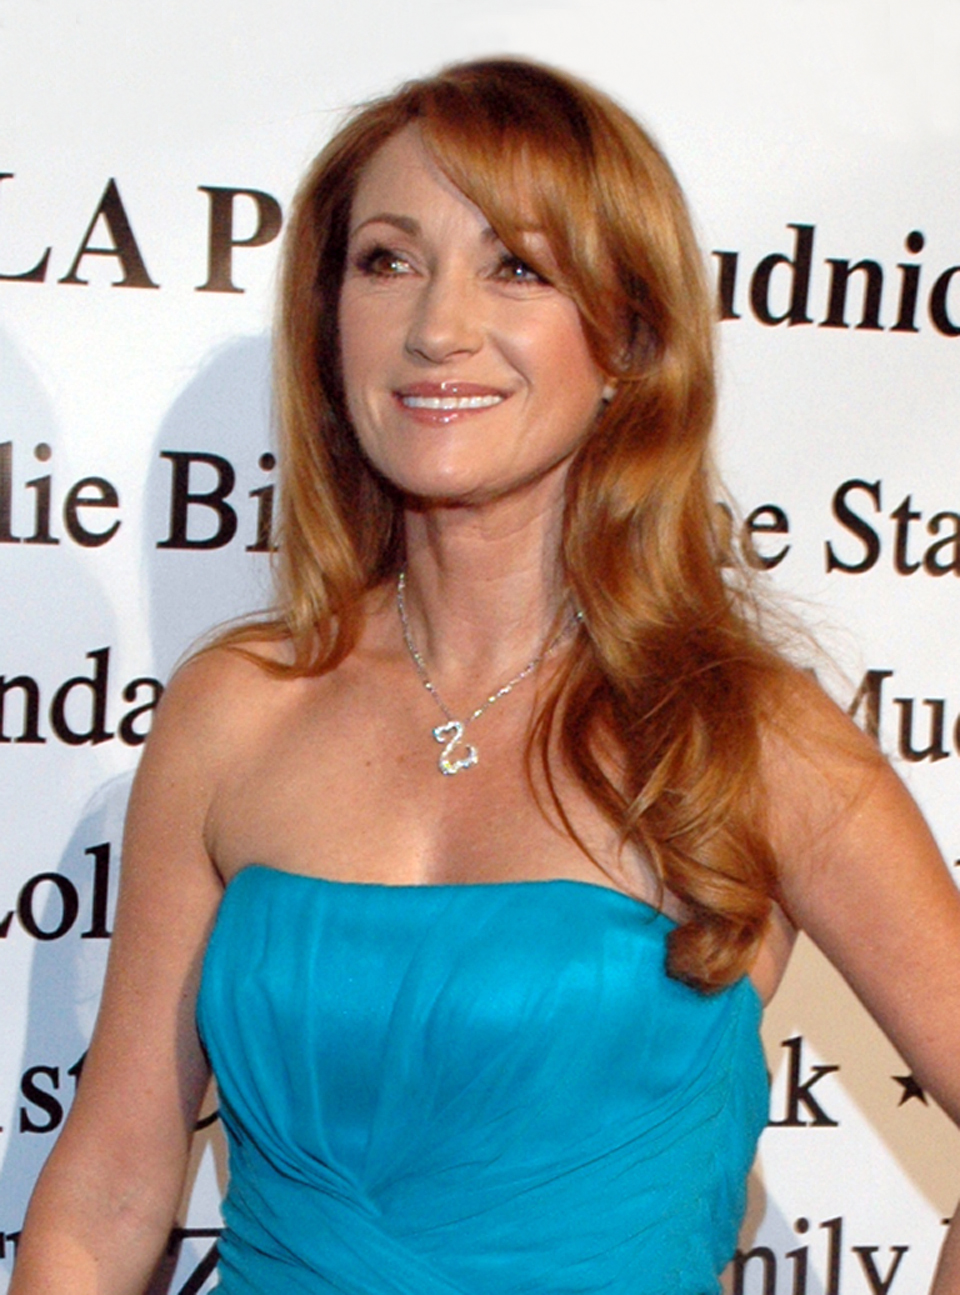 Forum on this topic: Jeannette Clift George, jane-seymour-born-1951-naturalized-american-citizen/